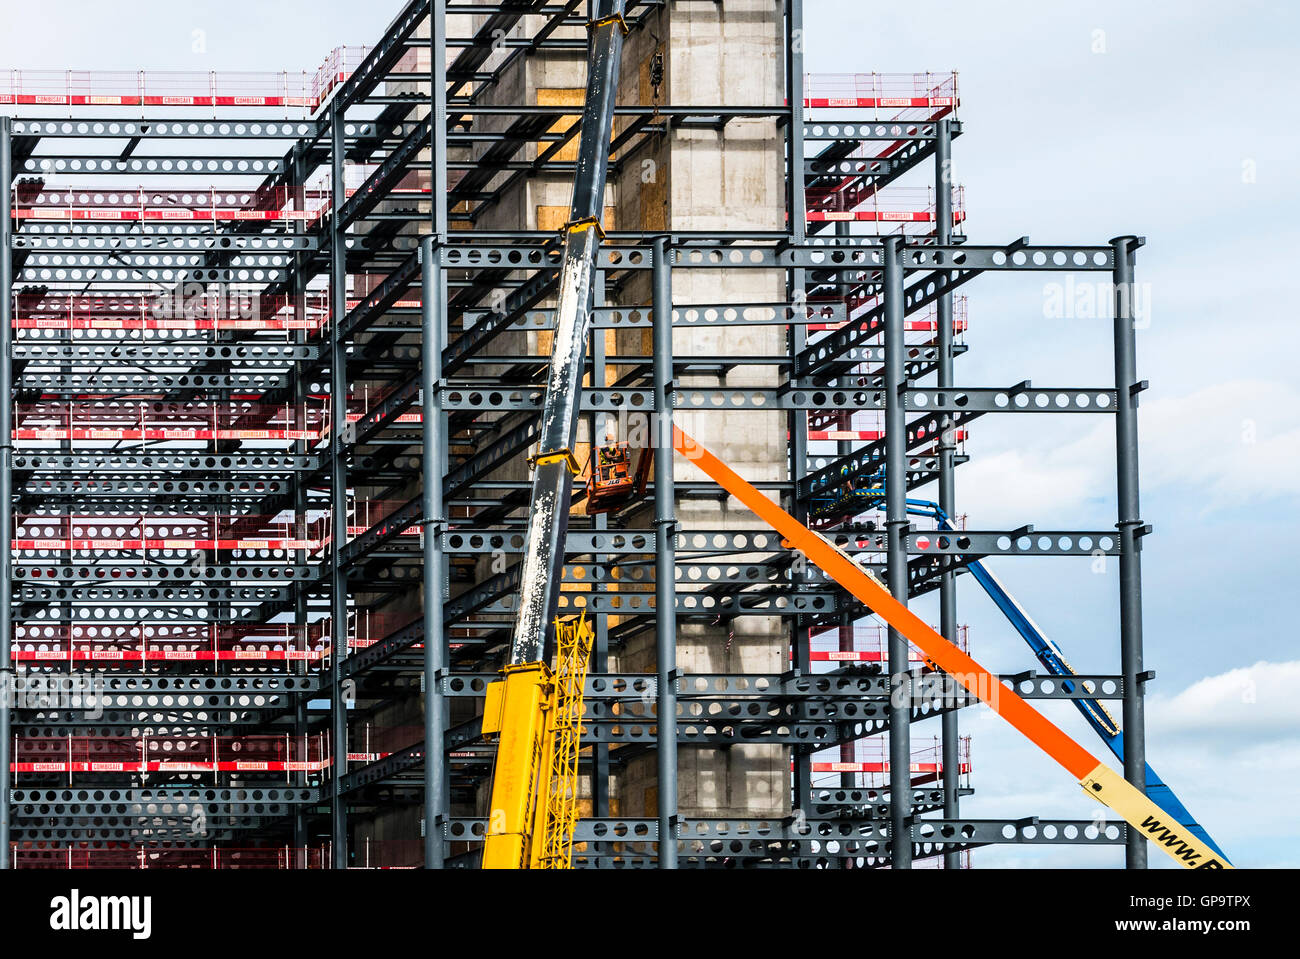 Cranes lift steel i-beams into place during the construction of a modern office block. Stock Photo